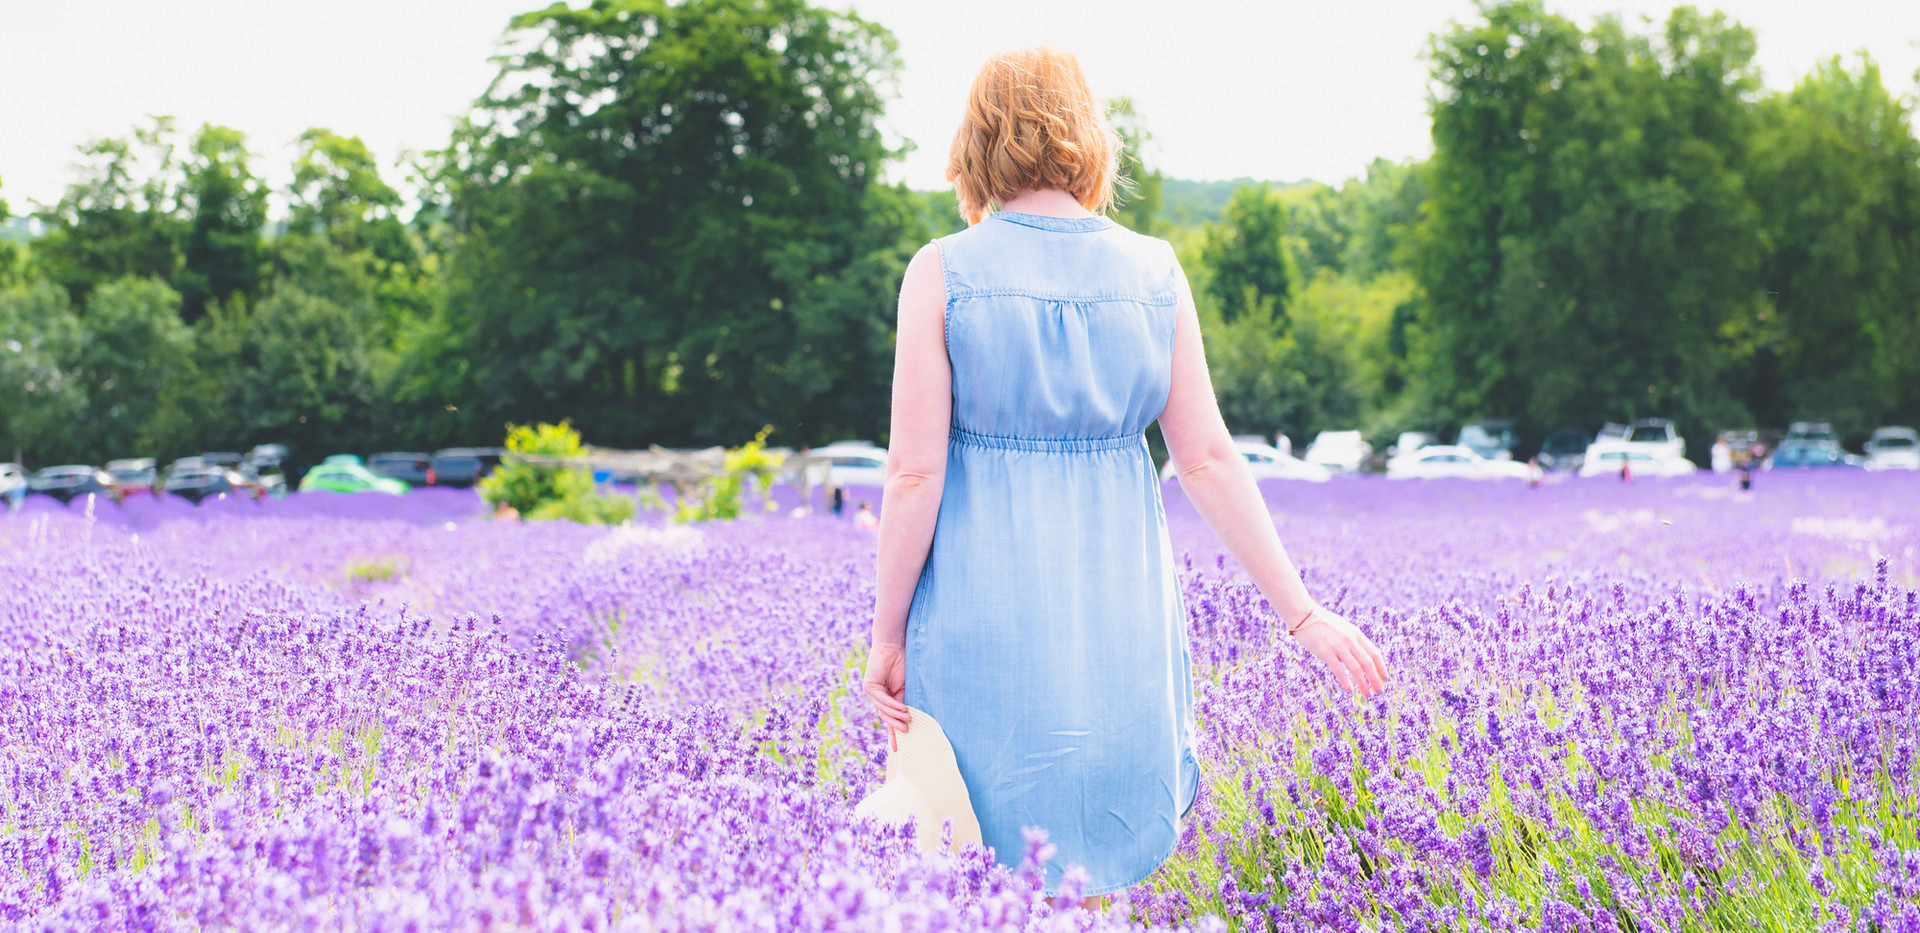 Walking Through The Lavender Feilds